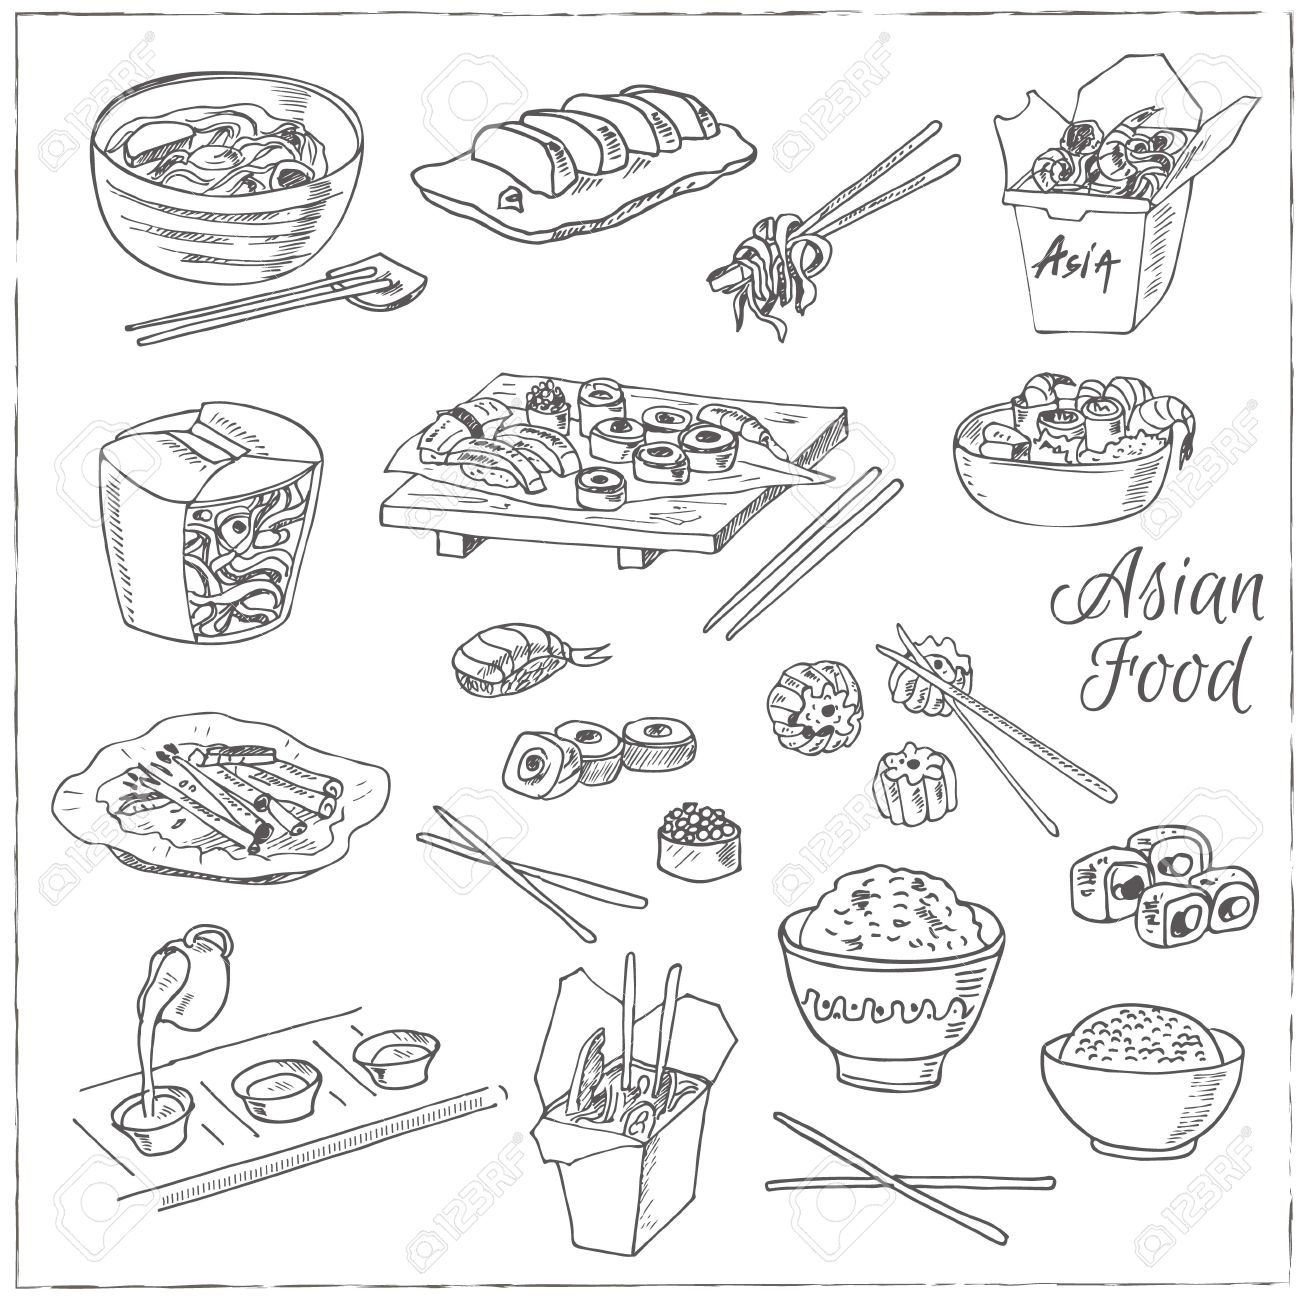 Asian Food Decorative Chinese Icons Set Vector Illustration For Design Menus Recipes